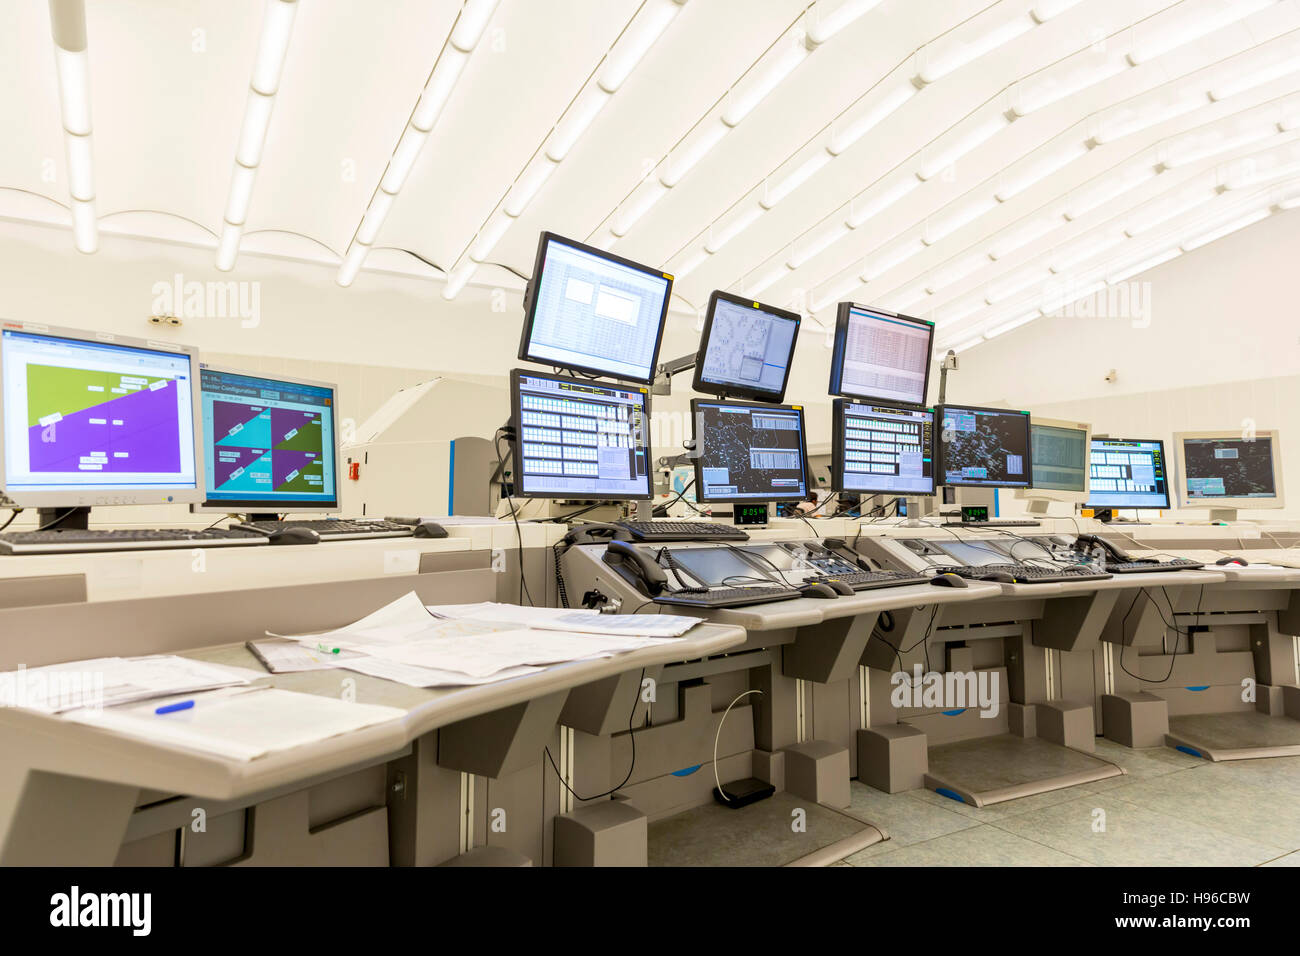 Sofia, Bulgaria - September 12, 2016: Air traffic control monitors at work in the flight control tower at Sofia's - Stock Image